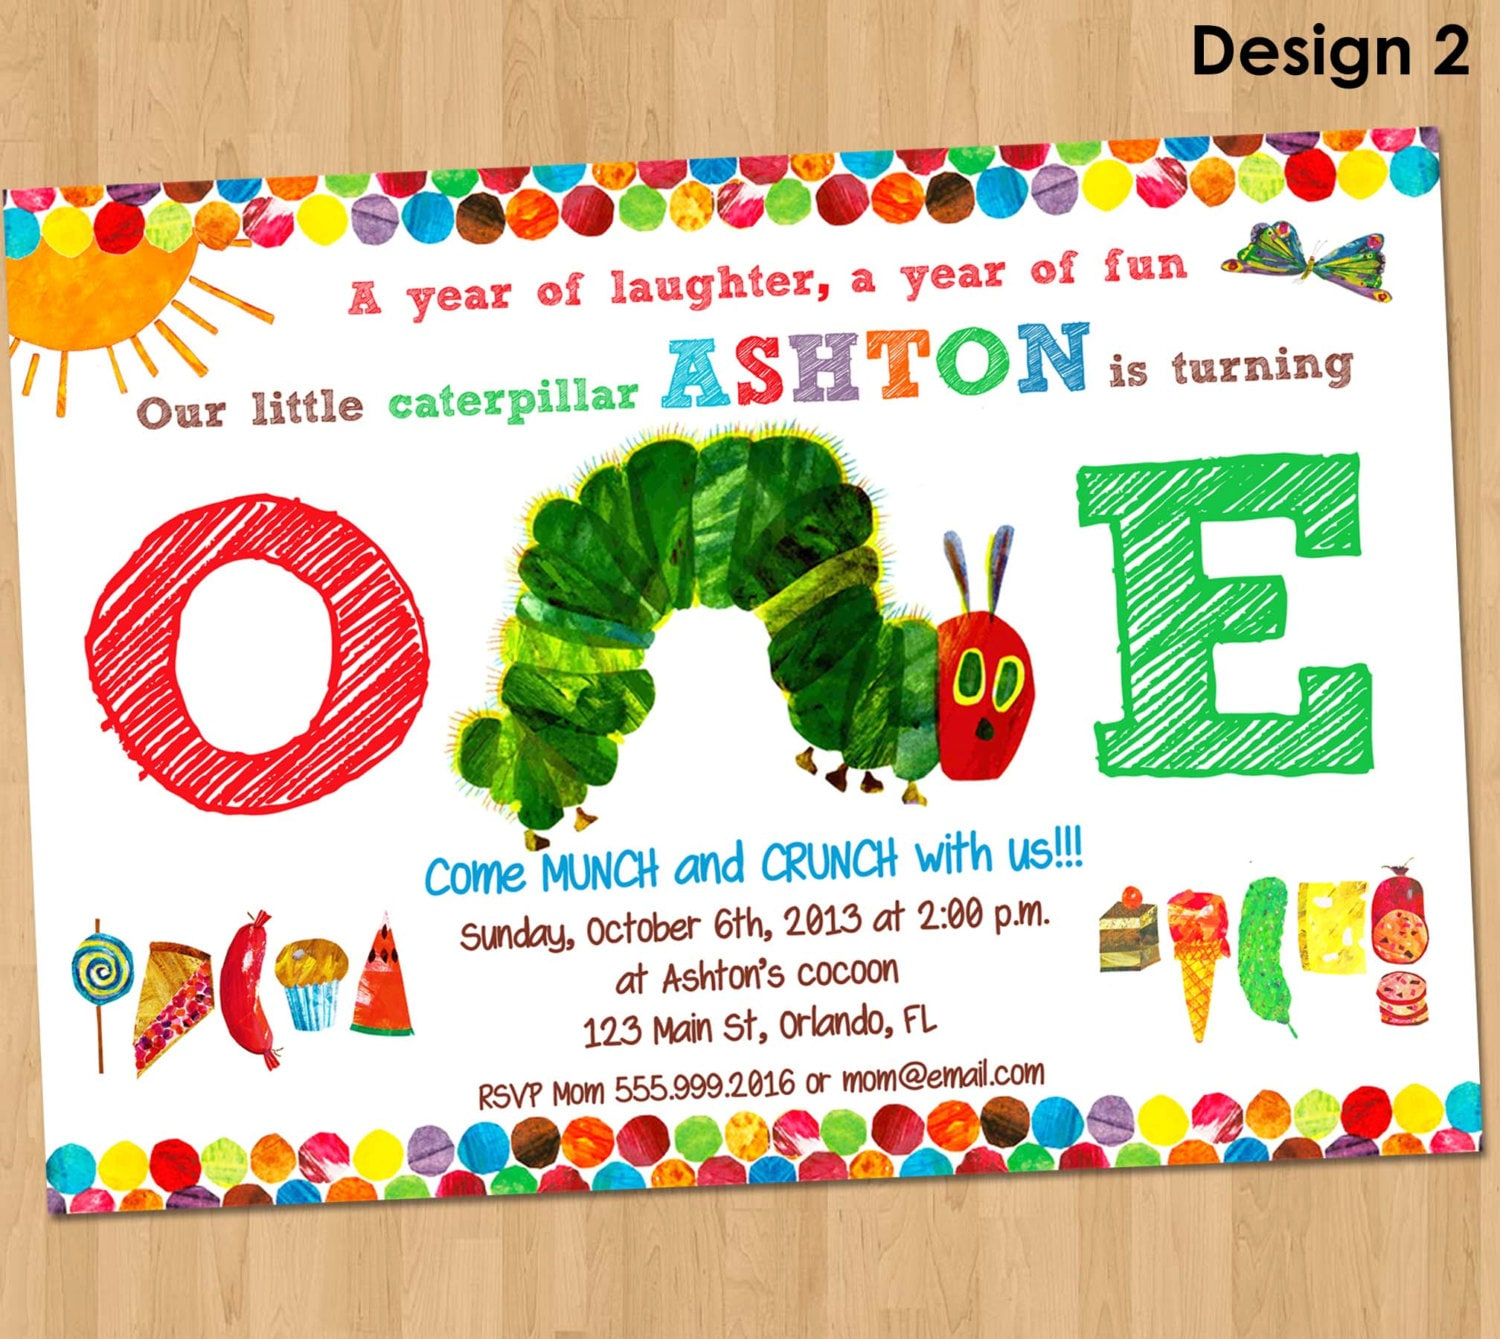 Hungry Caterpillar Invite was awesome invitations template